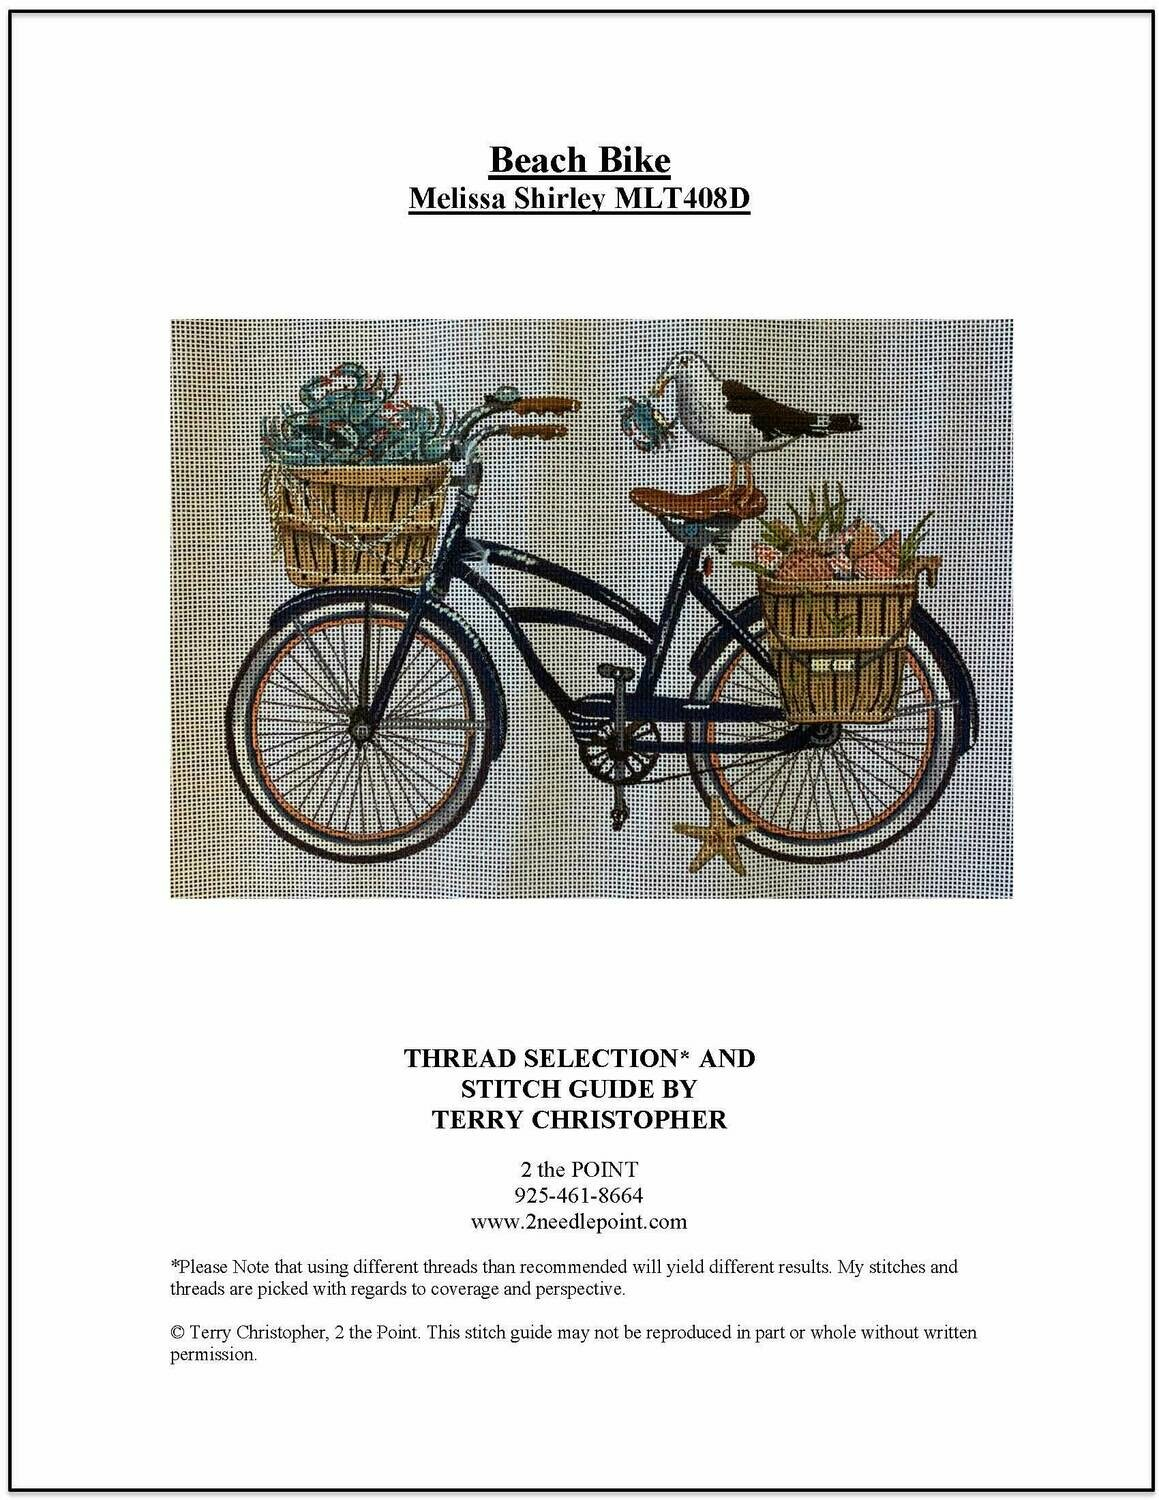 Melissa Shirley, Beach Bike MSMLT480D